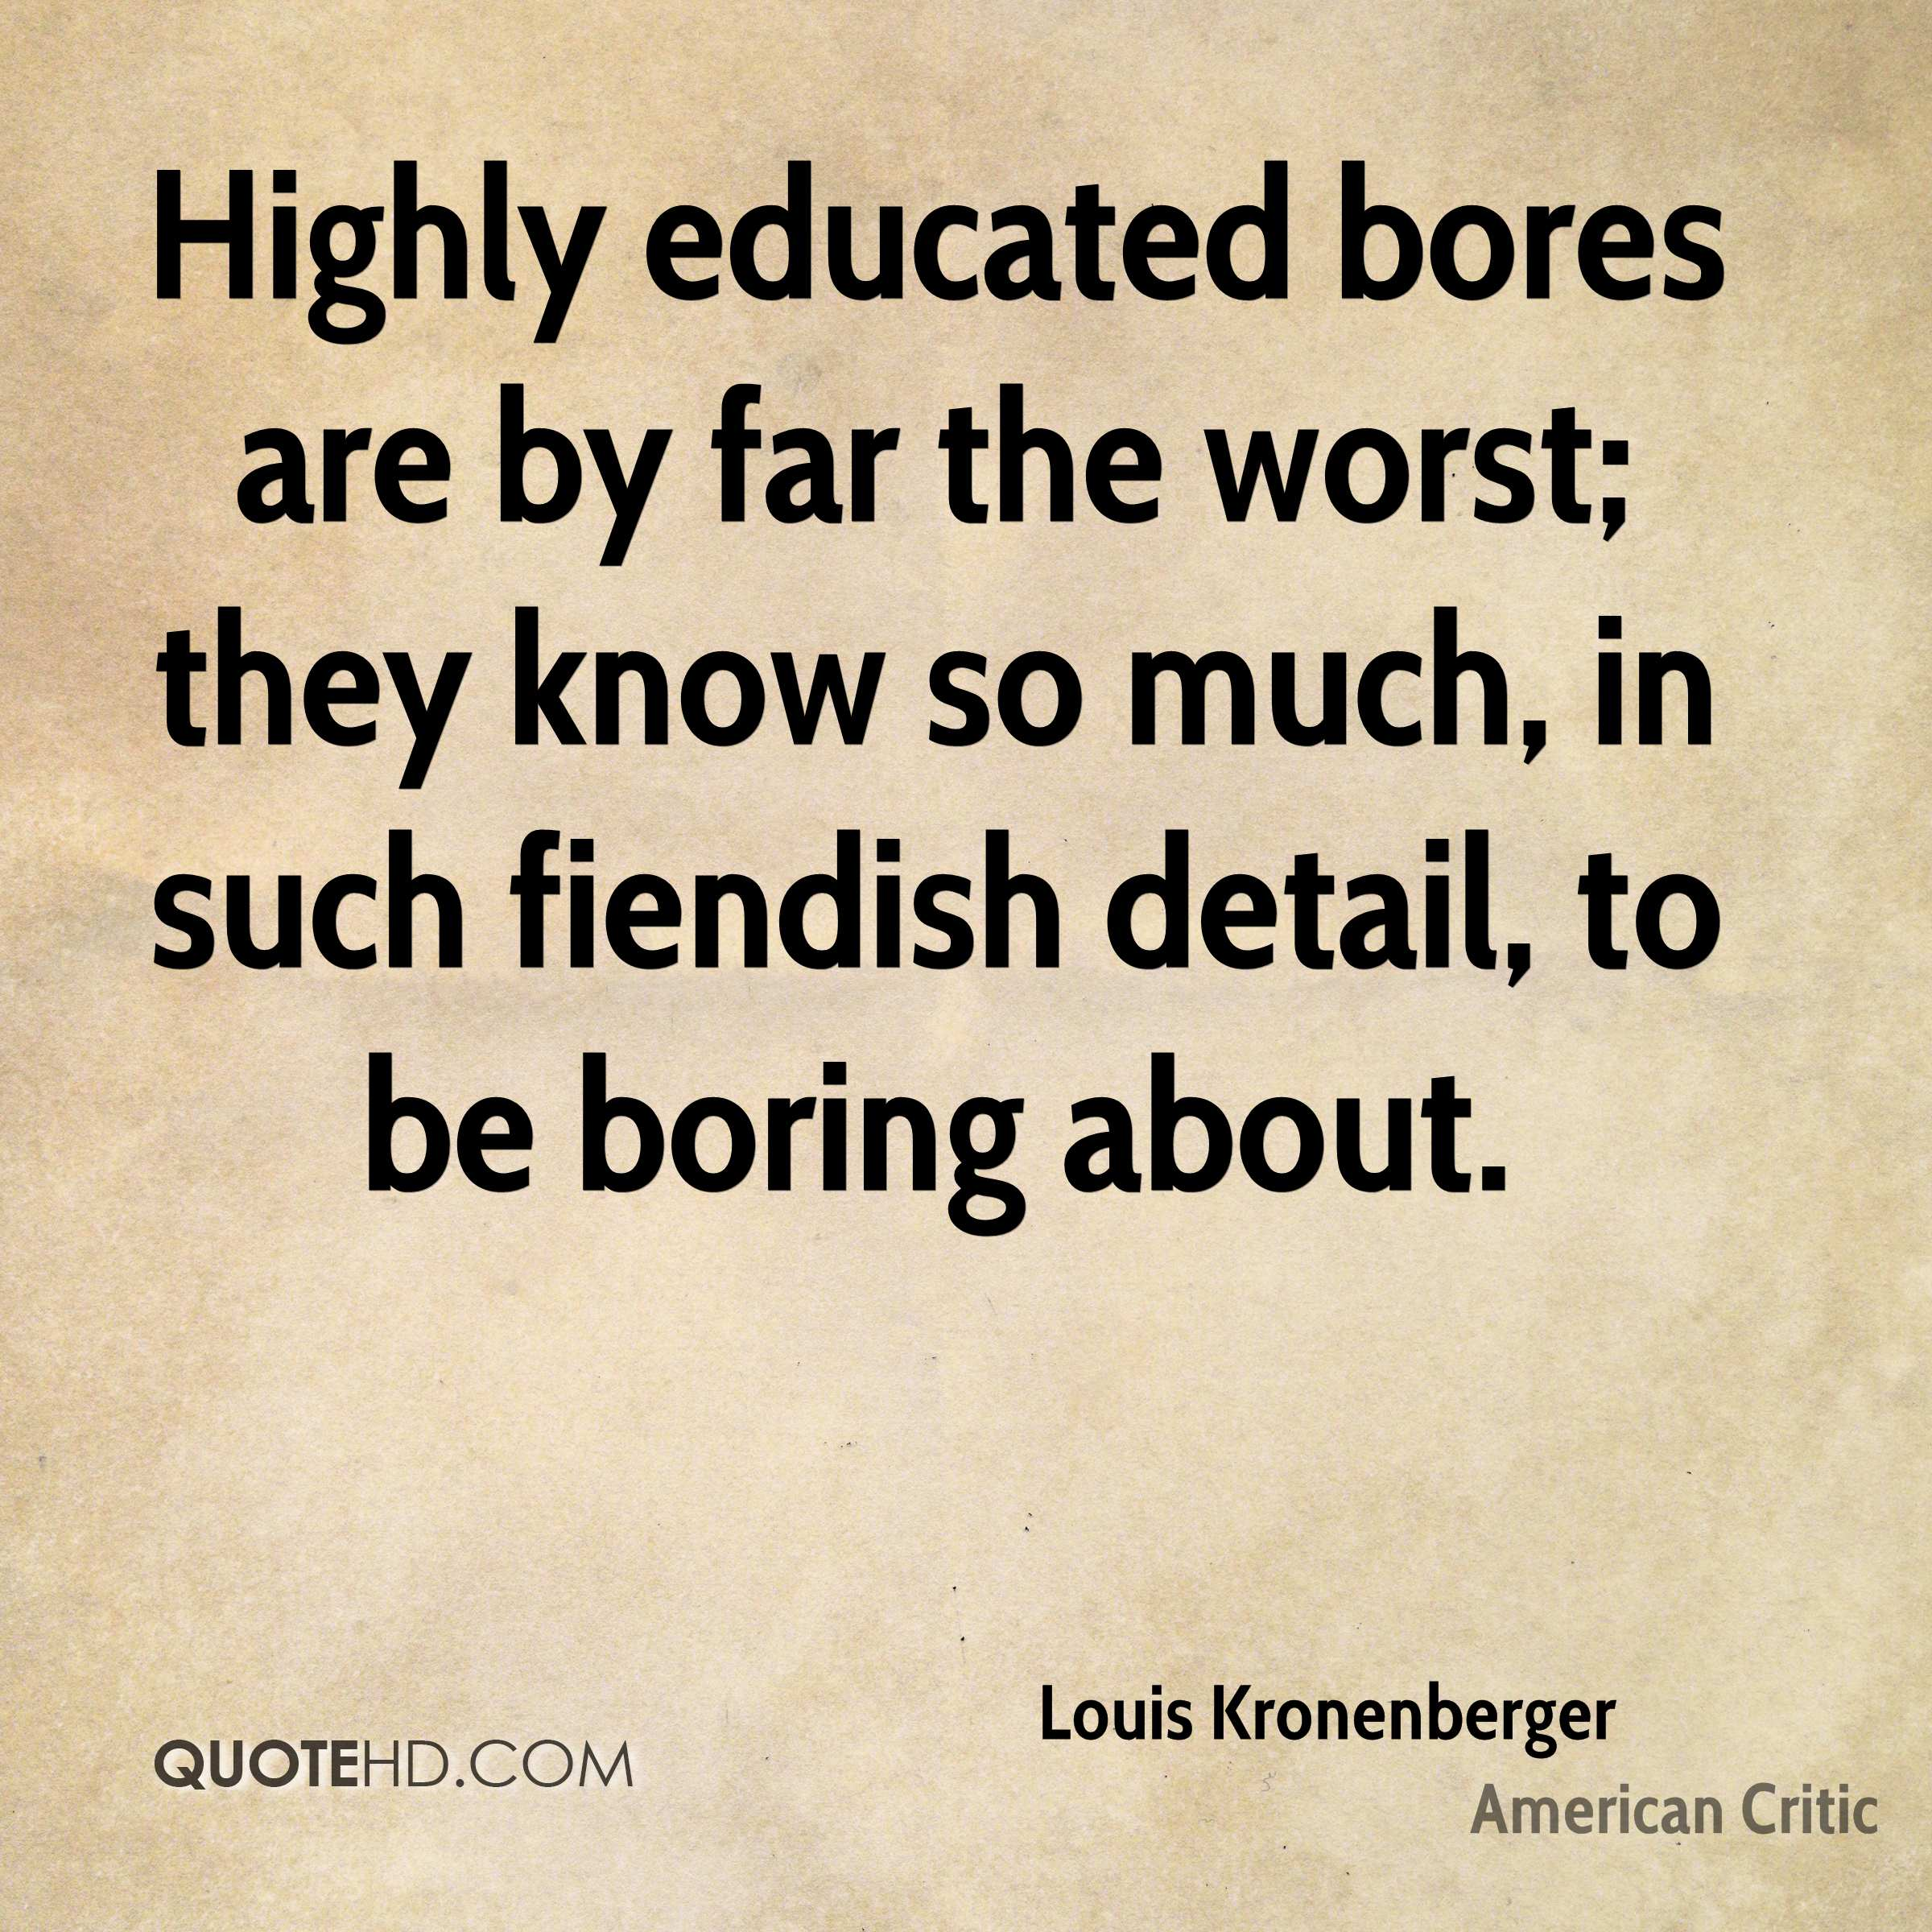 Highly educated bores are by far the worst; they know so much, in such fiendish detail, to be boring about.